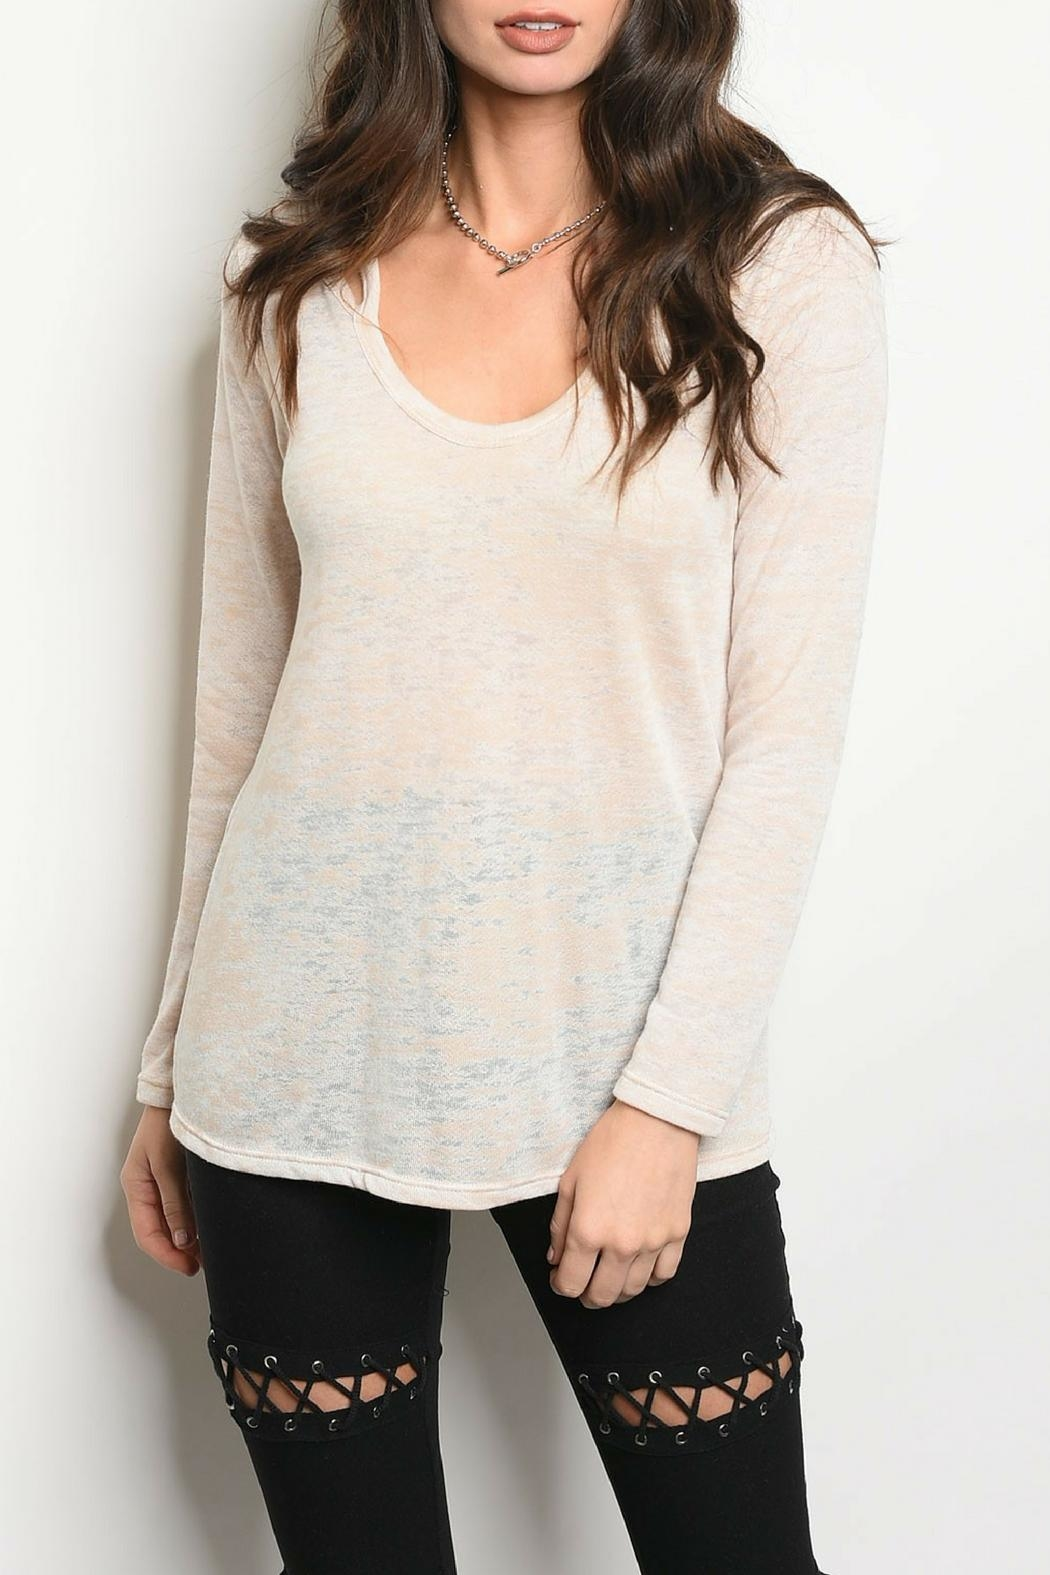 Sweet Claire Lightweight Oatmeal Top - Main Image